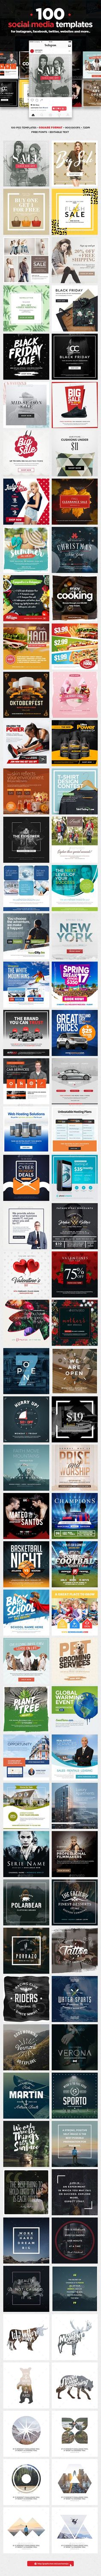 100 #Social Media #Templates - Social Media Web Elements Download here: https://graphicriver.net/item/100-social-media-templates/19475656?ref=alena994 Grow your business on automatically